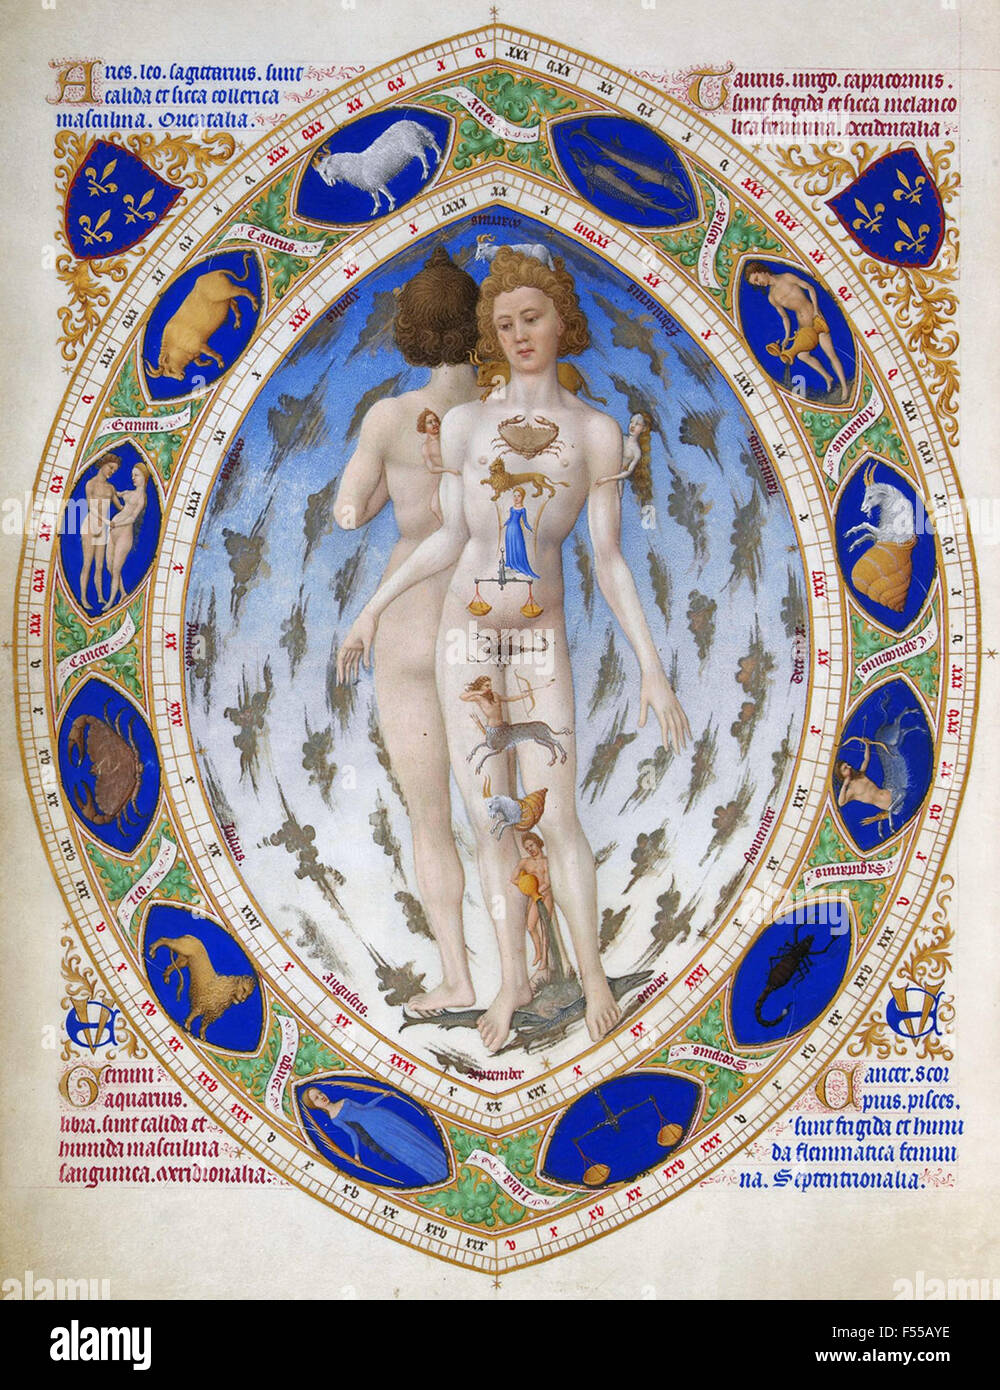 ANATOMICAL ZODIAC MAN from the early 15th century Tres Riches Heures du Duc de Berry - Stock Image